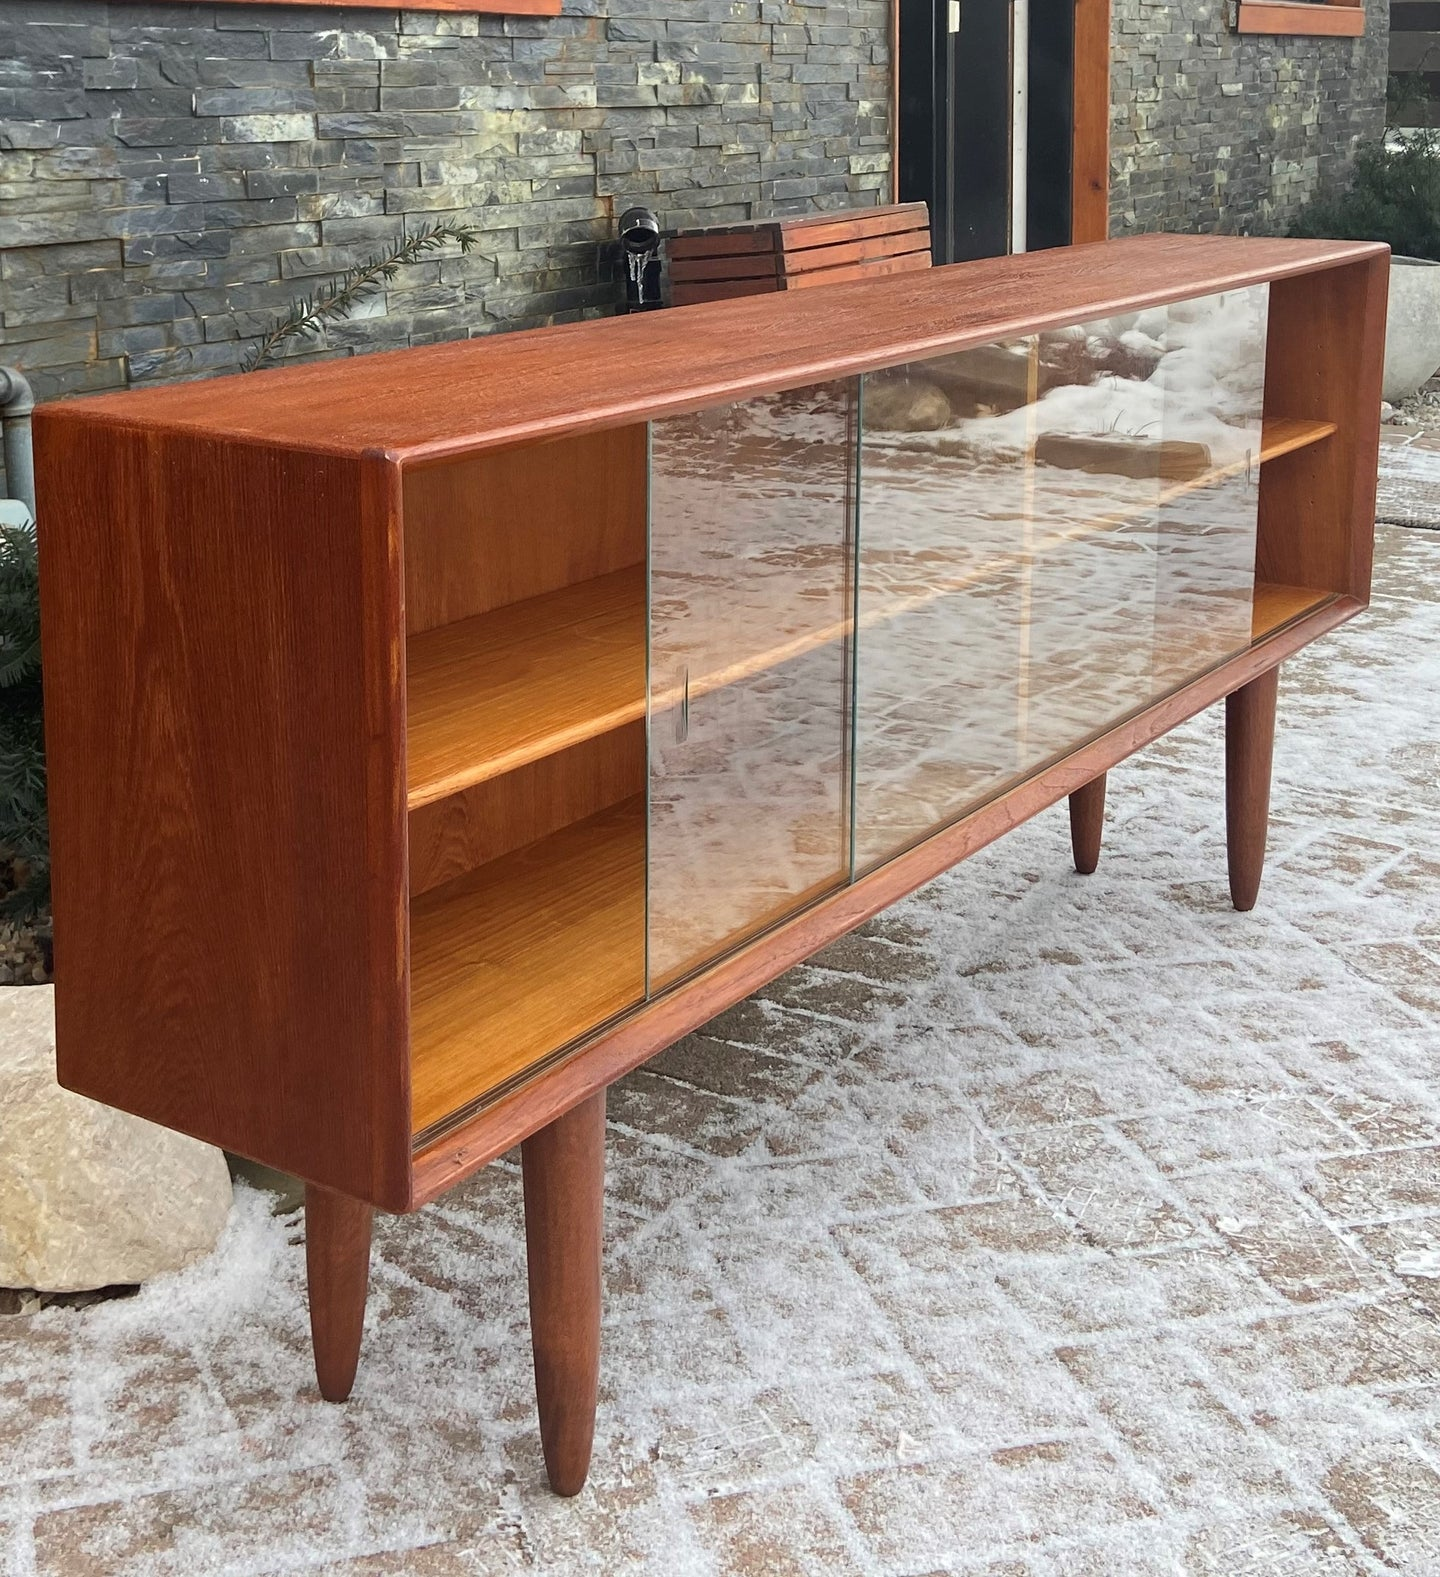 REFINISHED Danish MCM Teak Display Bookcase 71